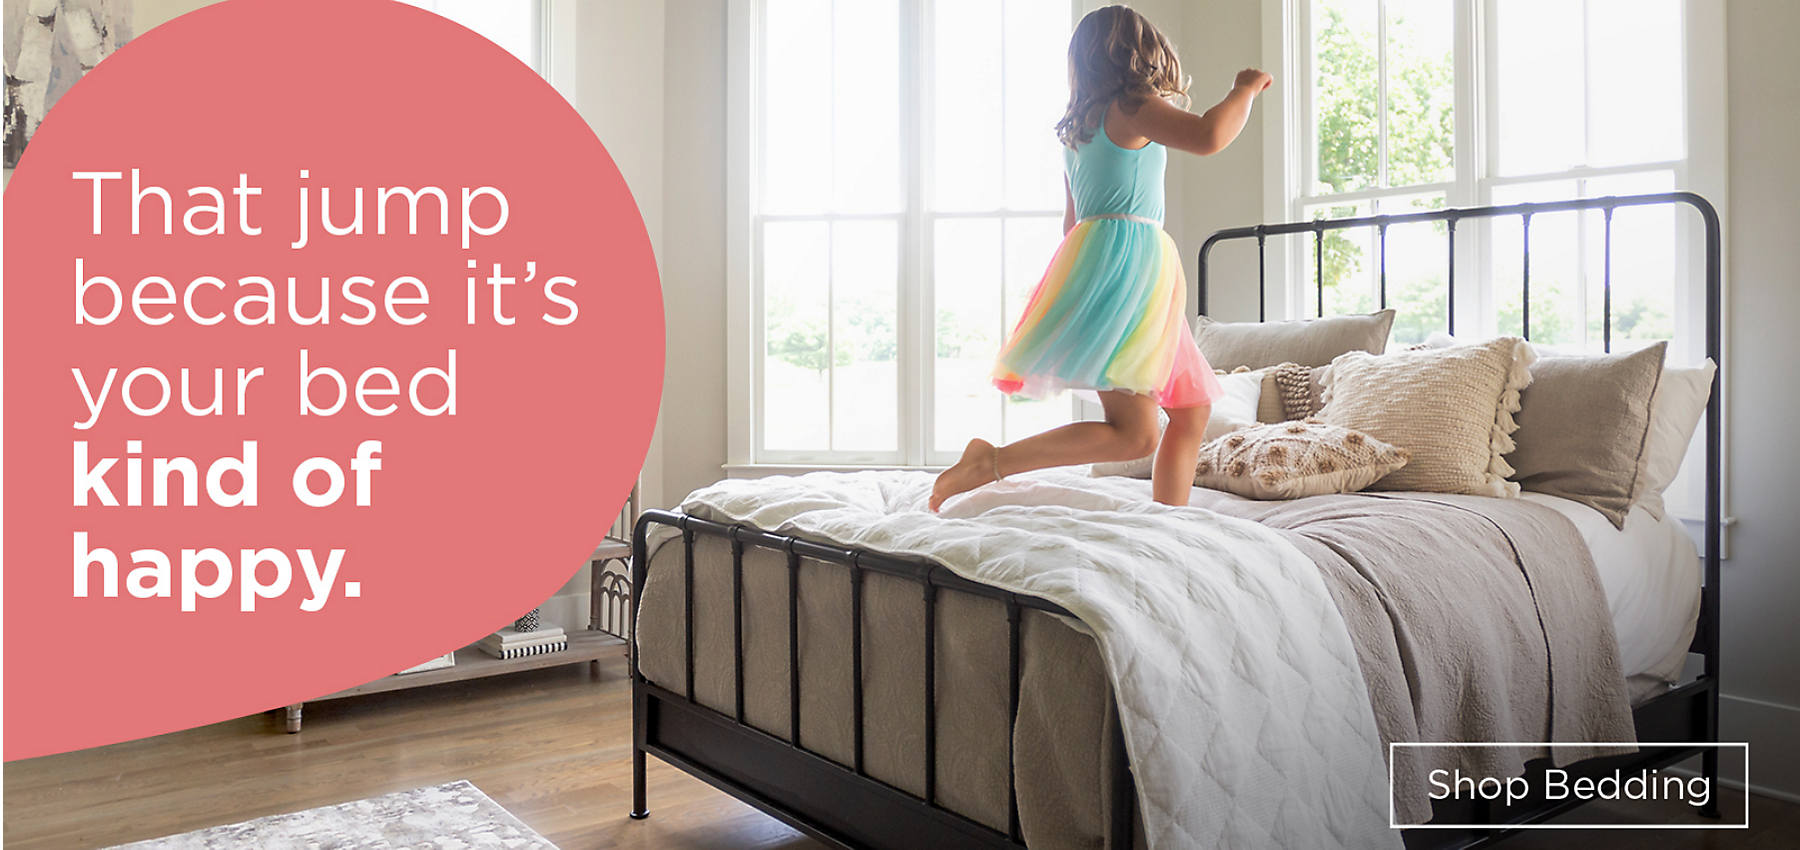 That jump because it's your bed kind of happy... Introducing Bedding Shop Bedding